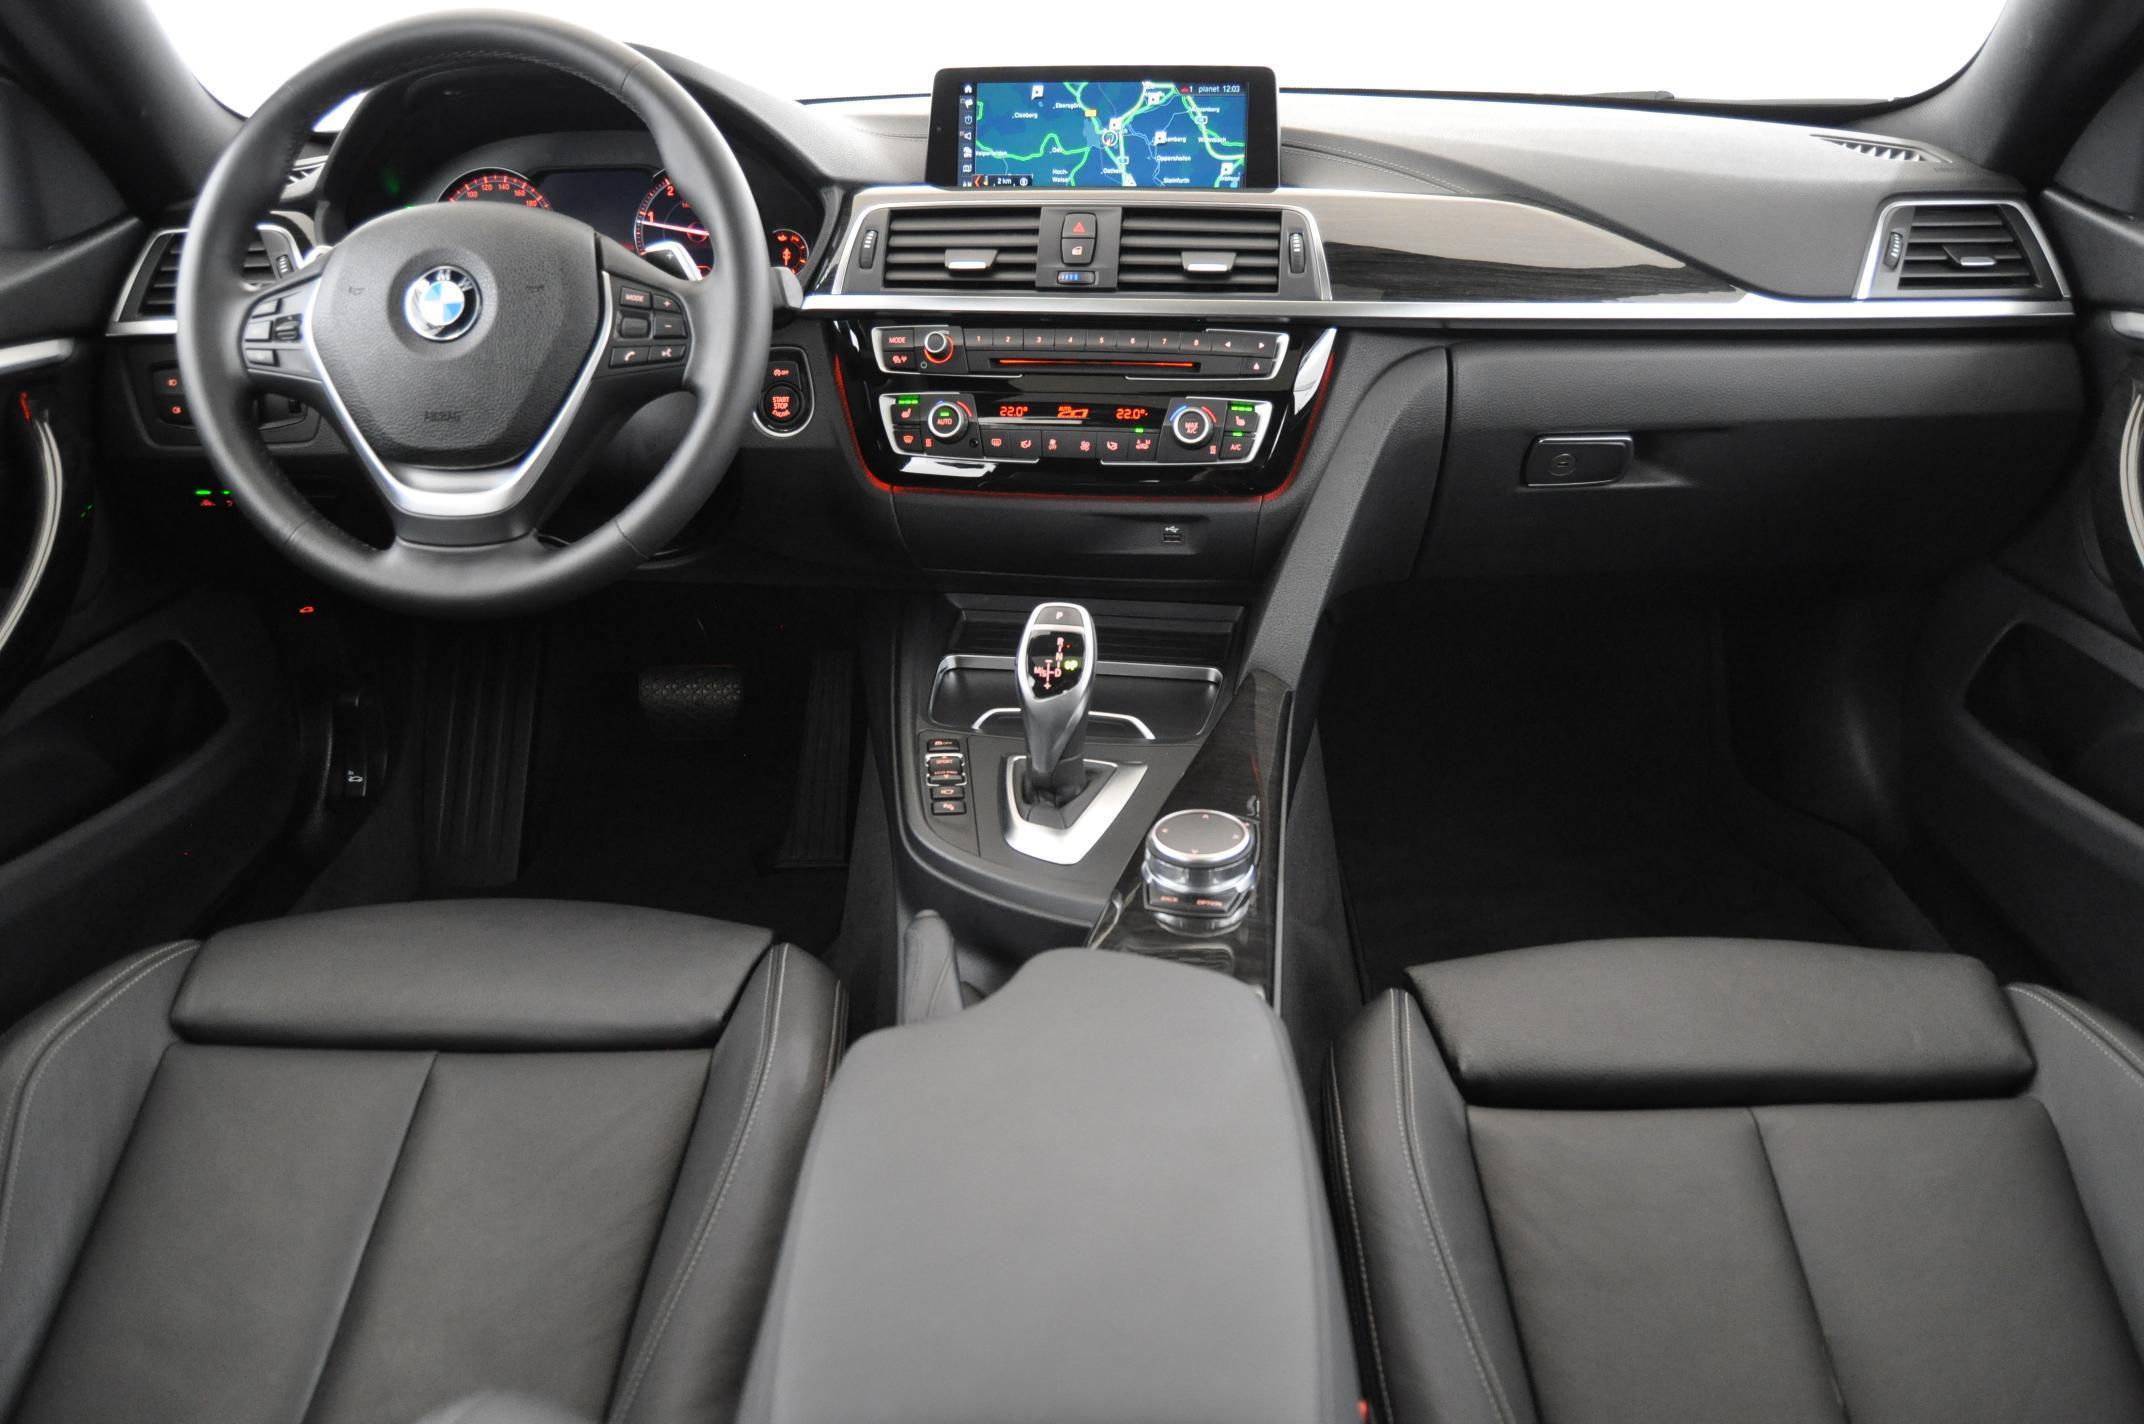 Coches de Segunda Mano BMW 420dA xDrive G-Coupe Luxury LED/NAV/M-DIS/GSD/19 0000007264